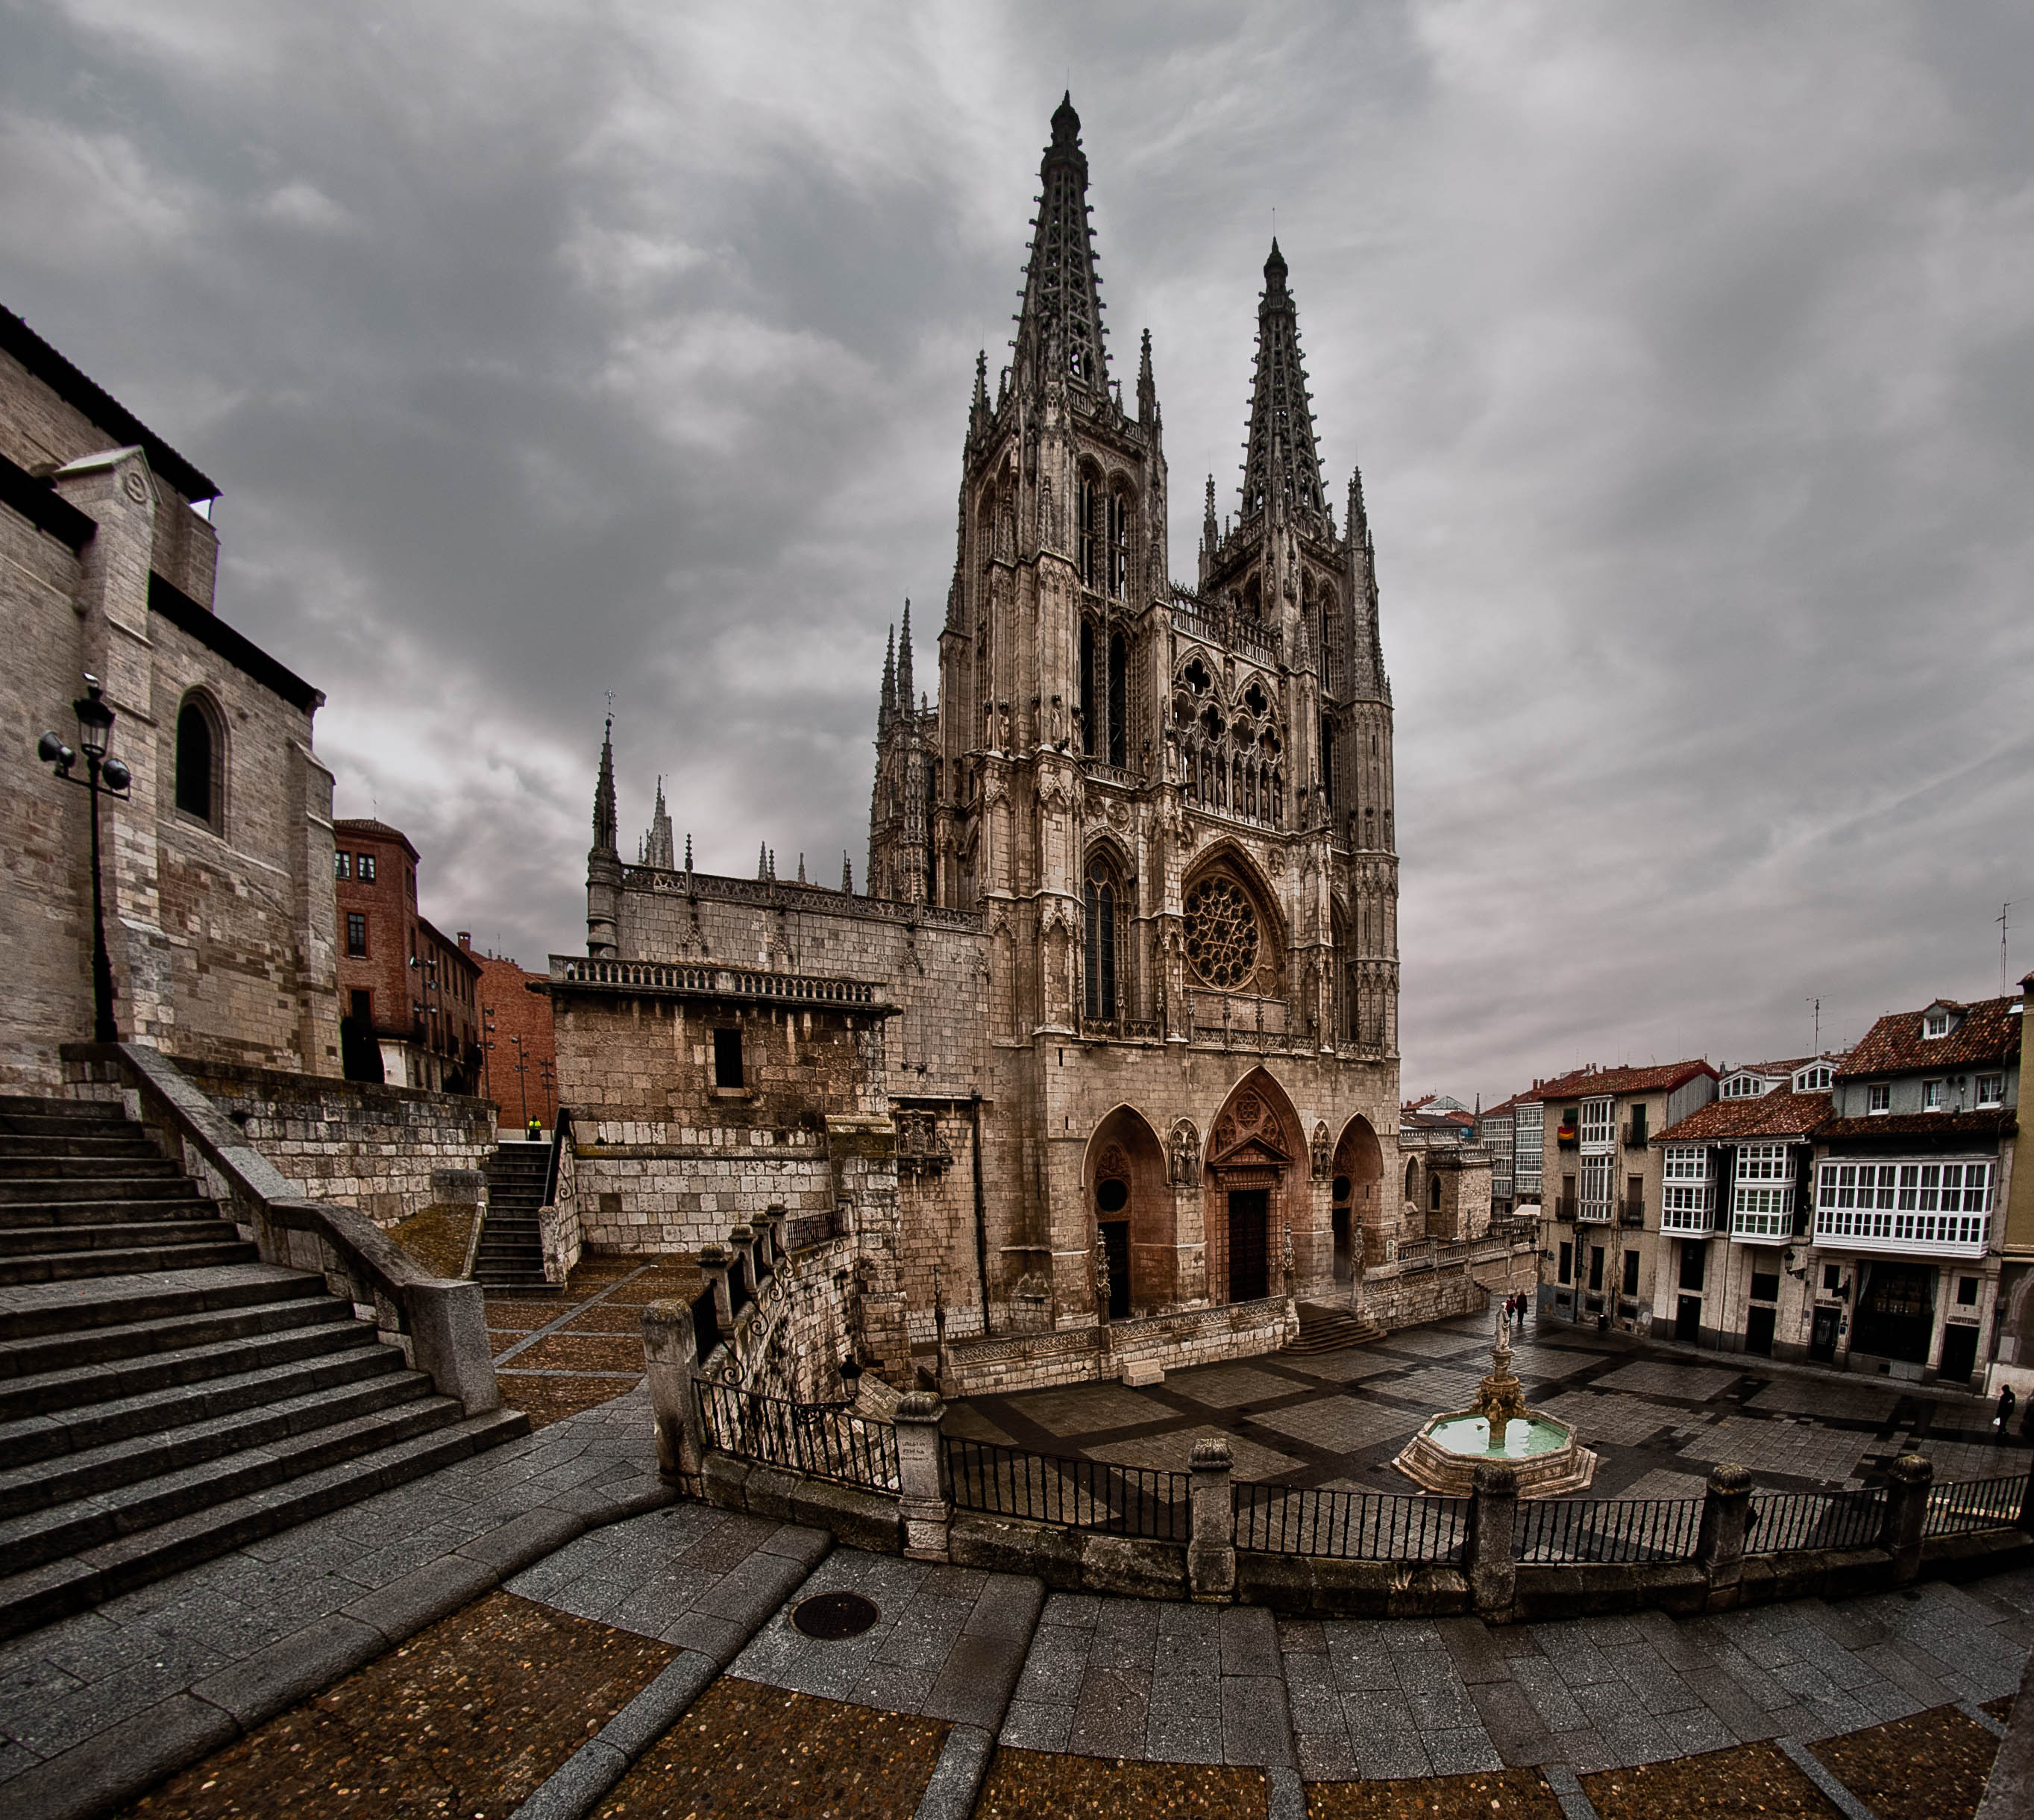 File:Catedral de Burgos (2).jpg - Wikimedia Commons